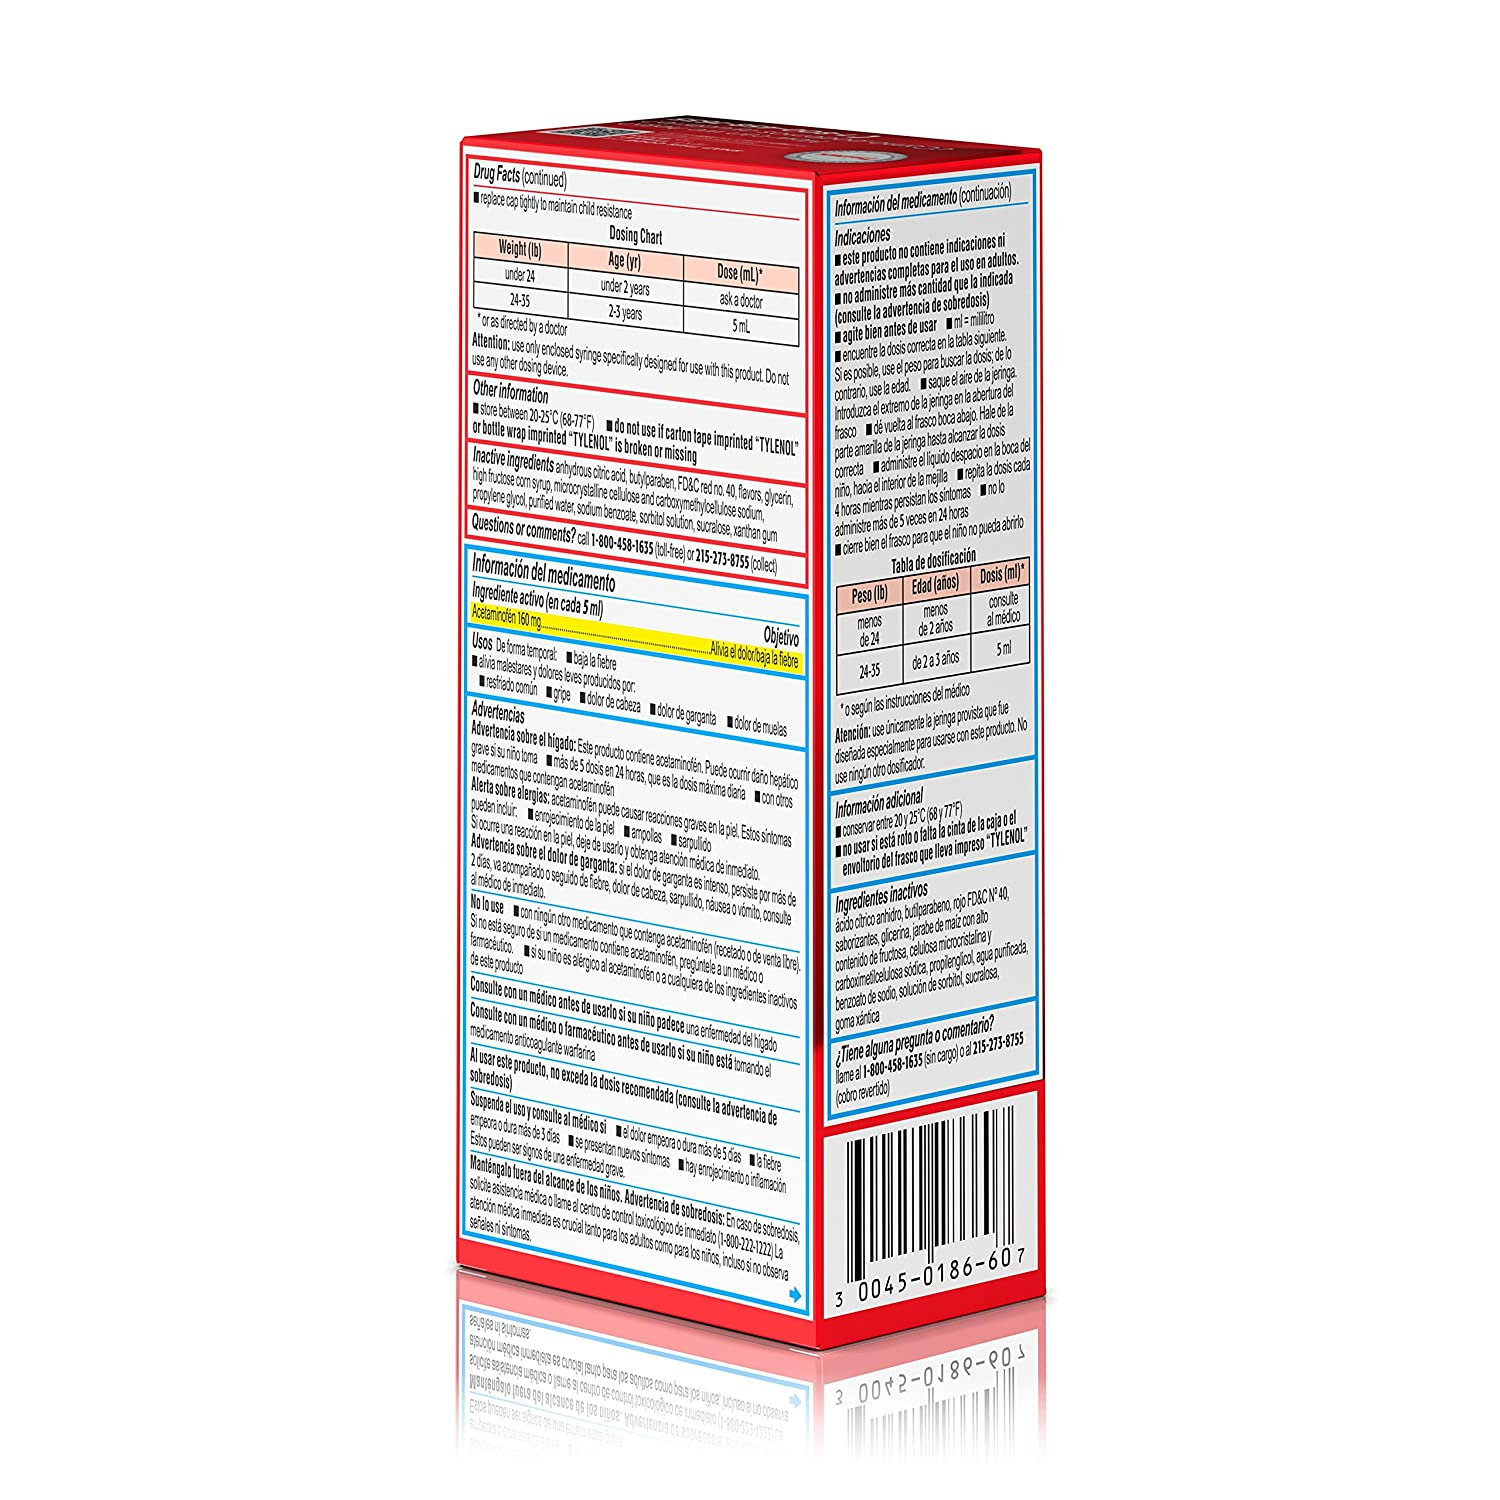 Amazon infants tylenol oral suspension fever reducer and amazon infants tylenol oral suspension fever reducer and pain reliever cherry 2 fl oz health personal care nvjuhfo Images